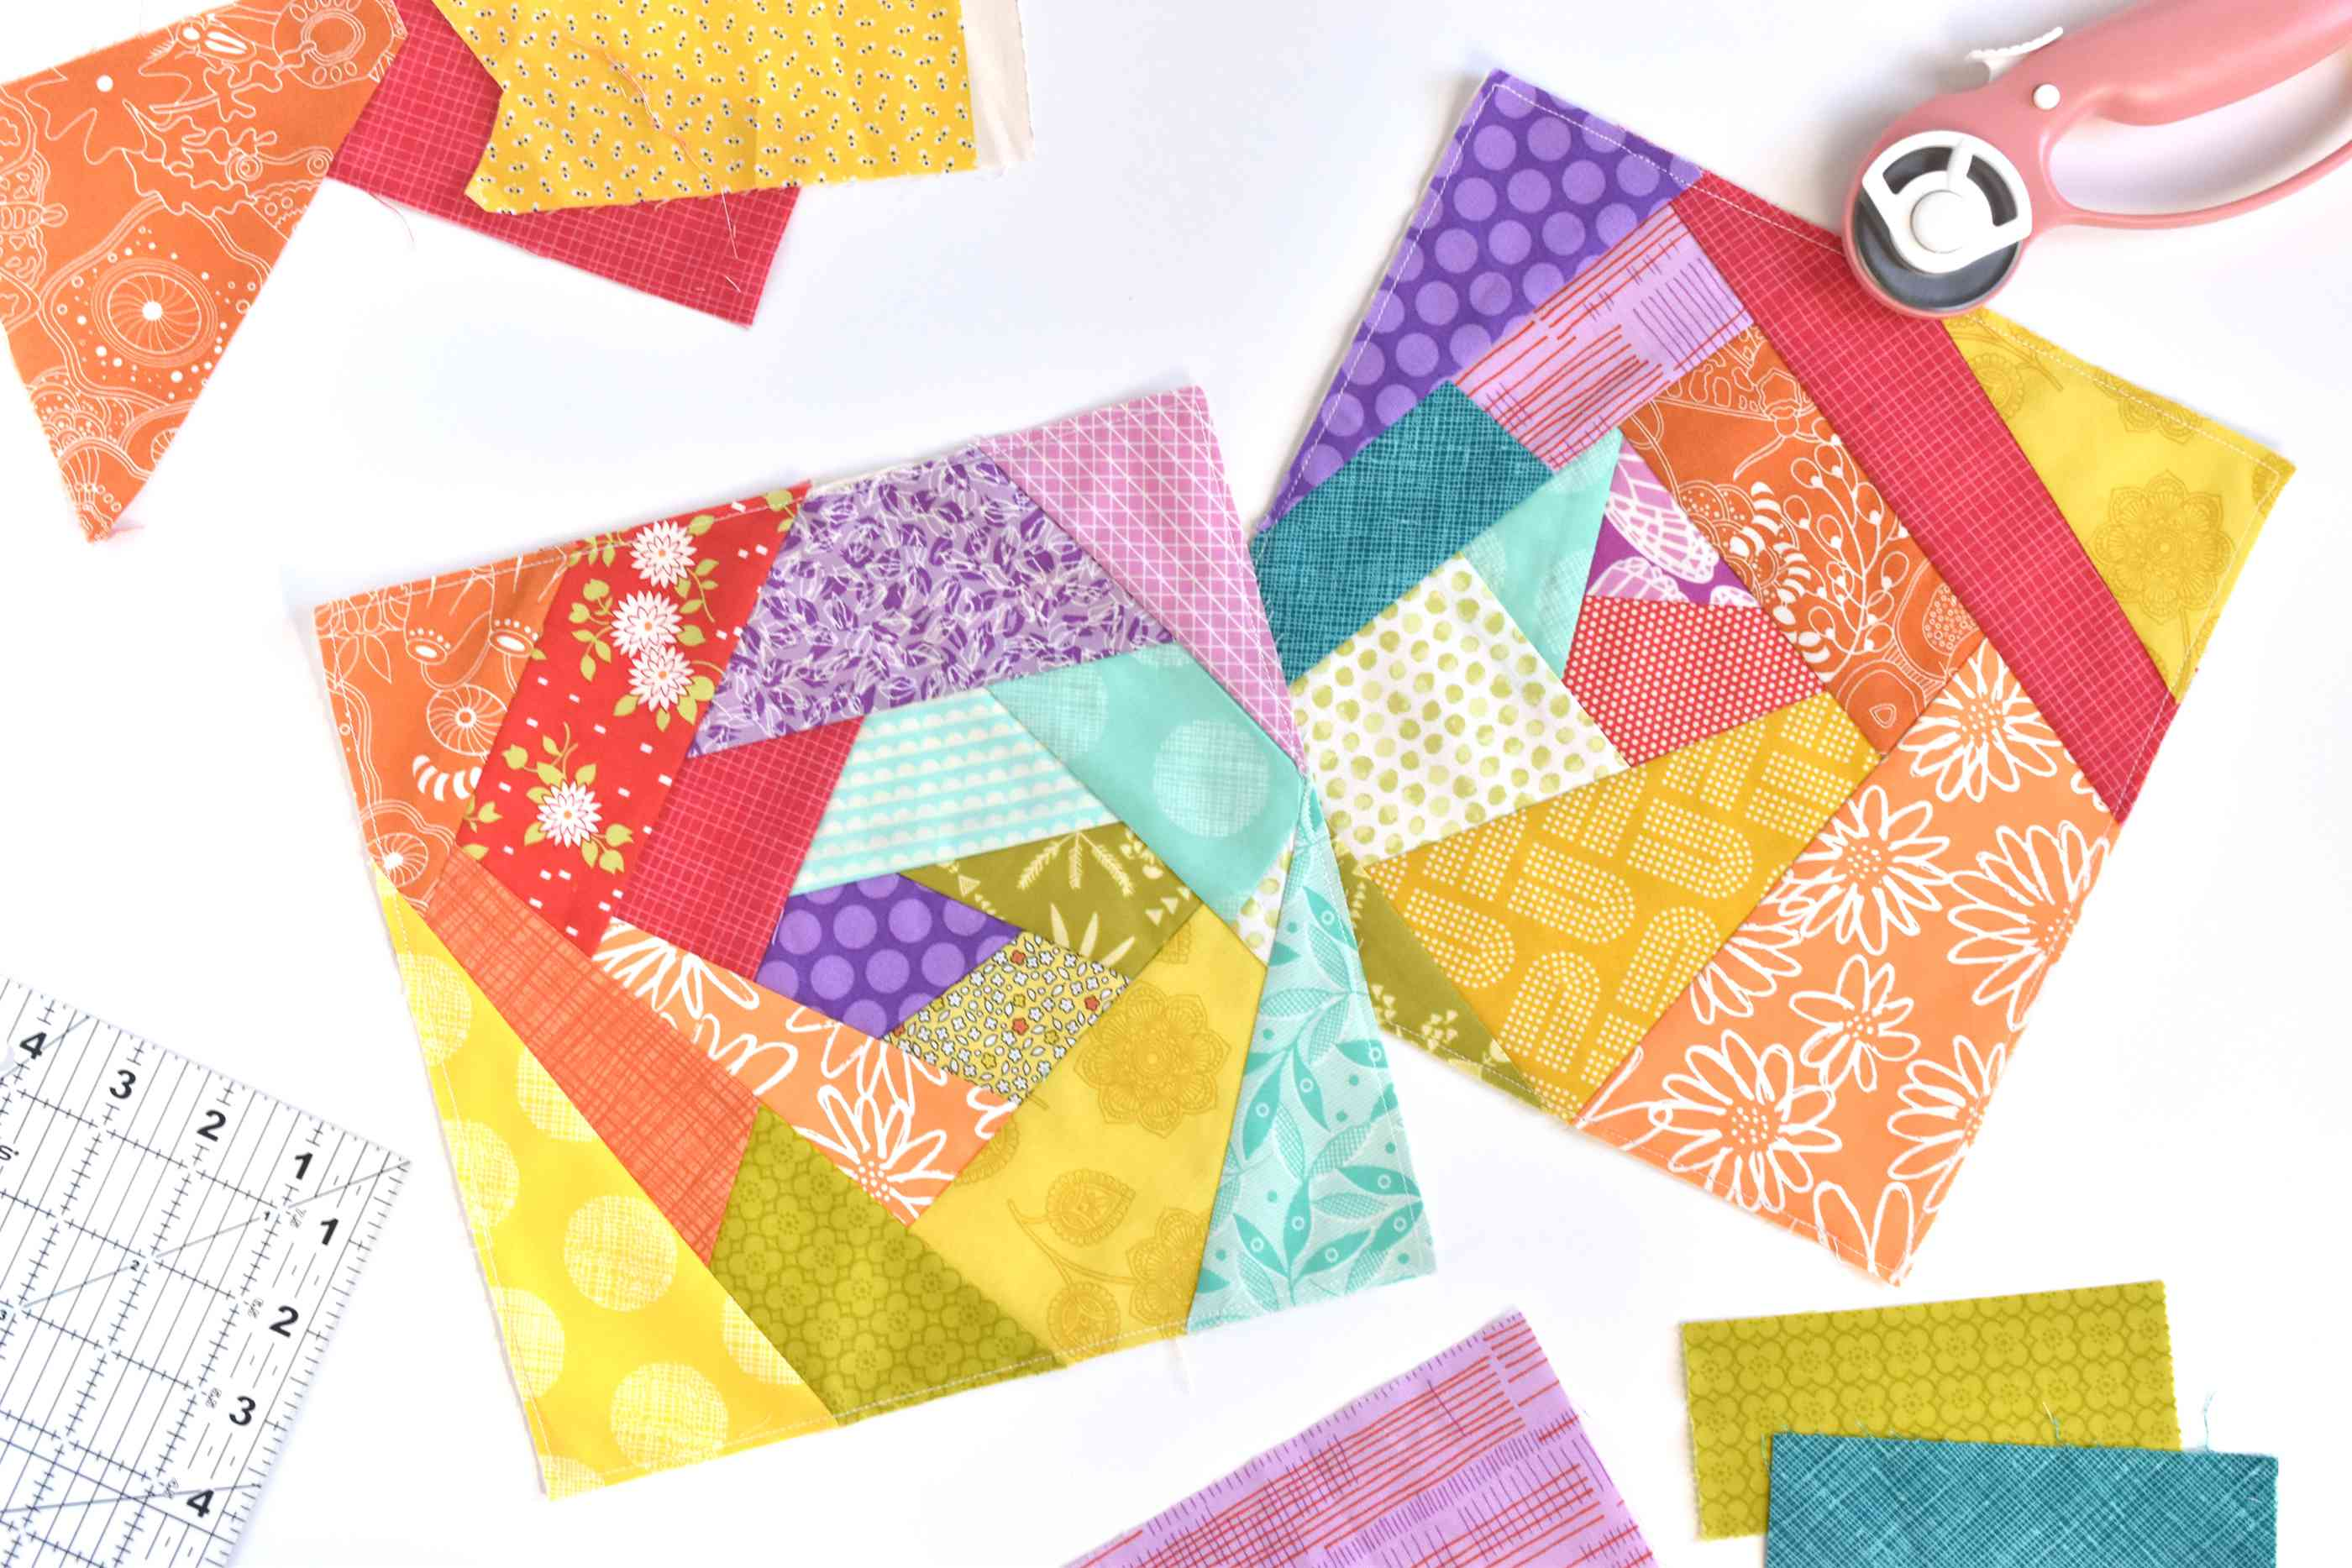 Crazy Quilt Squares and tools